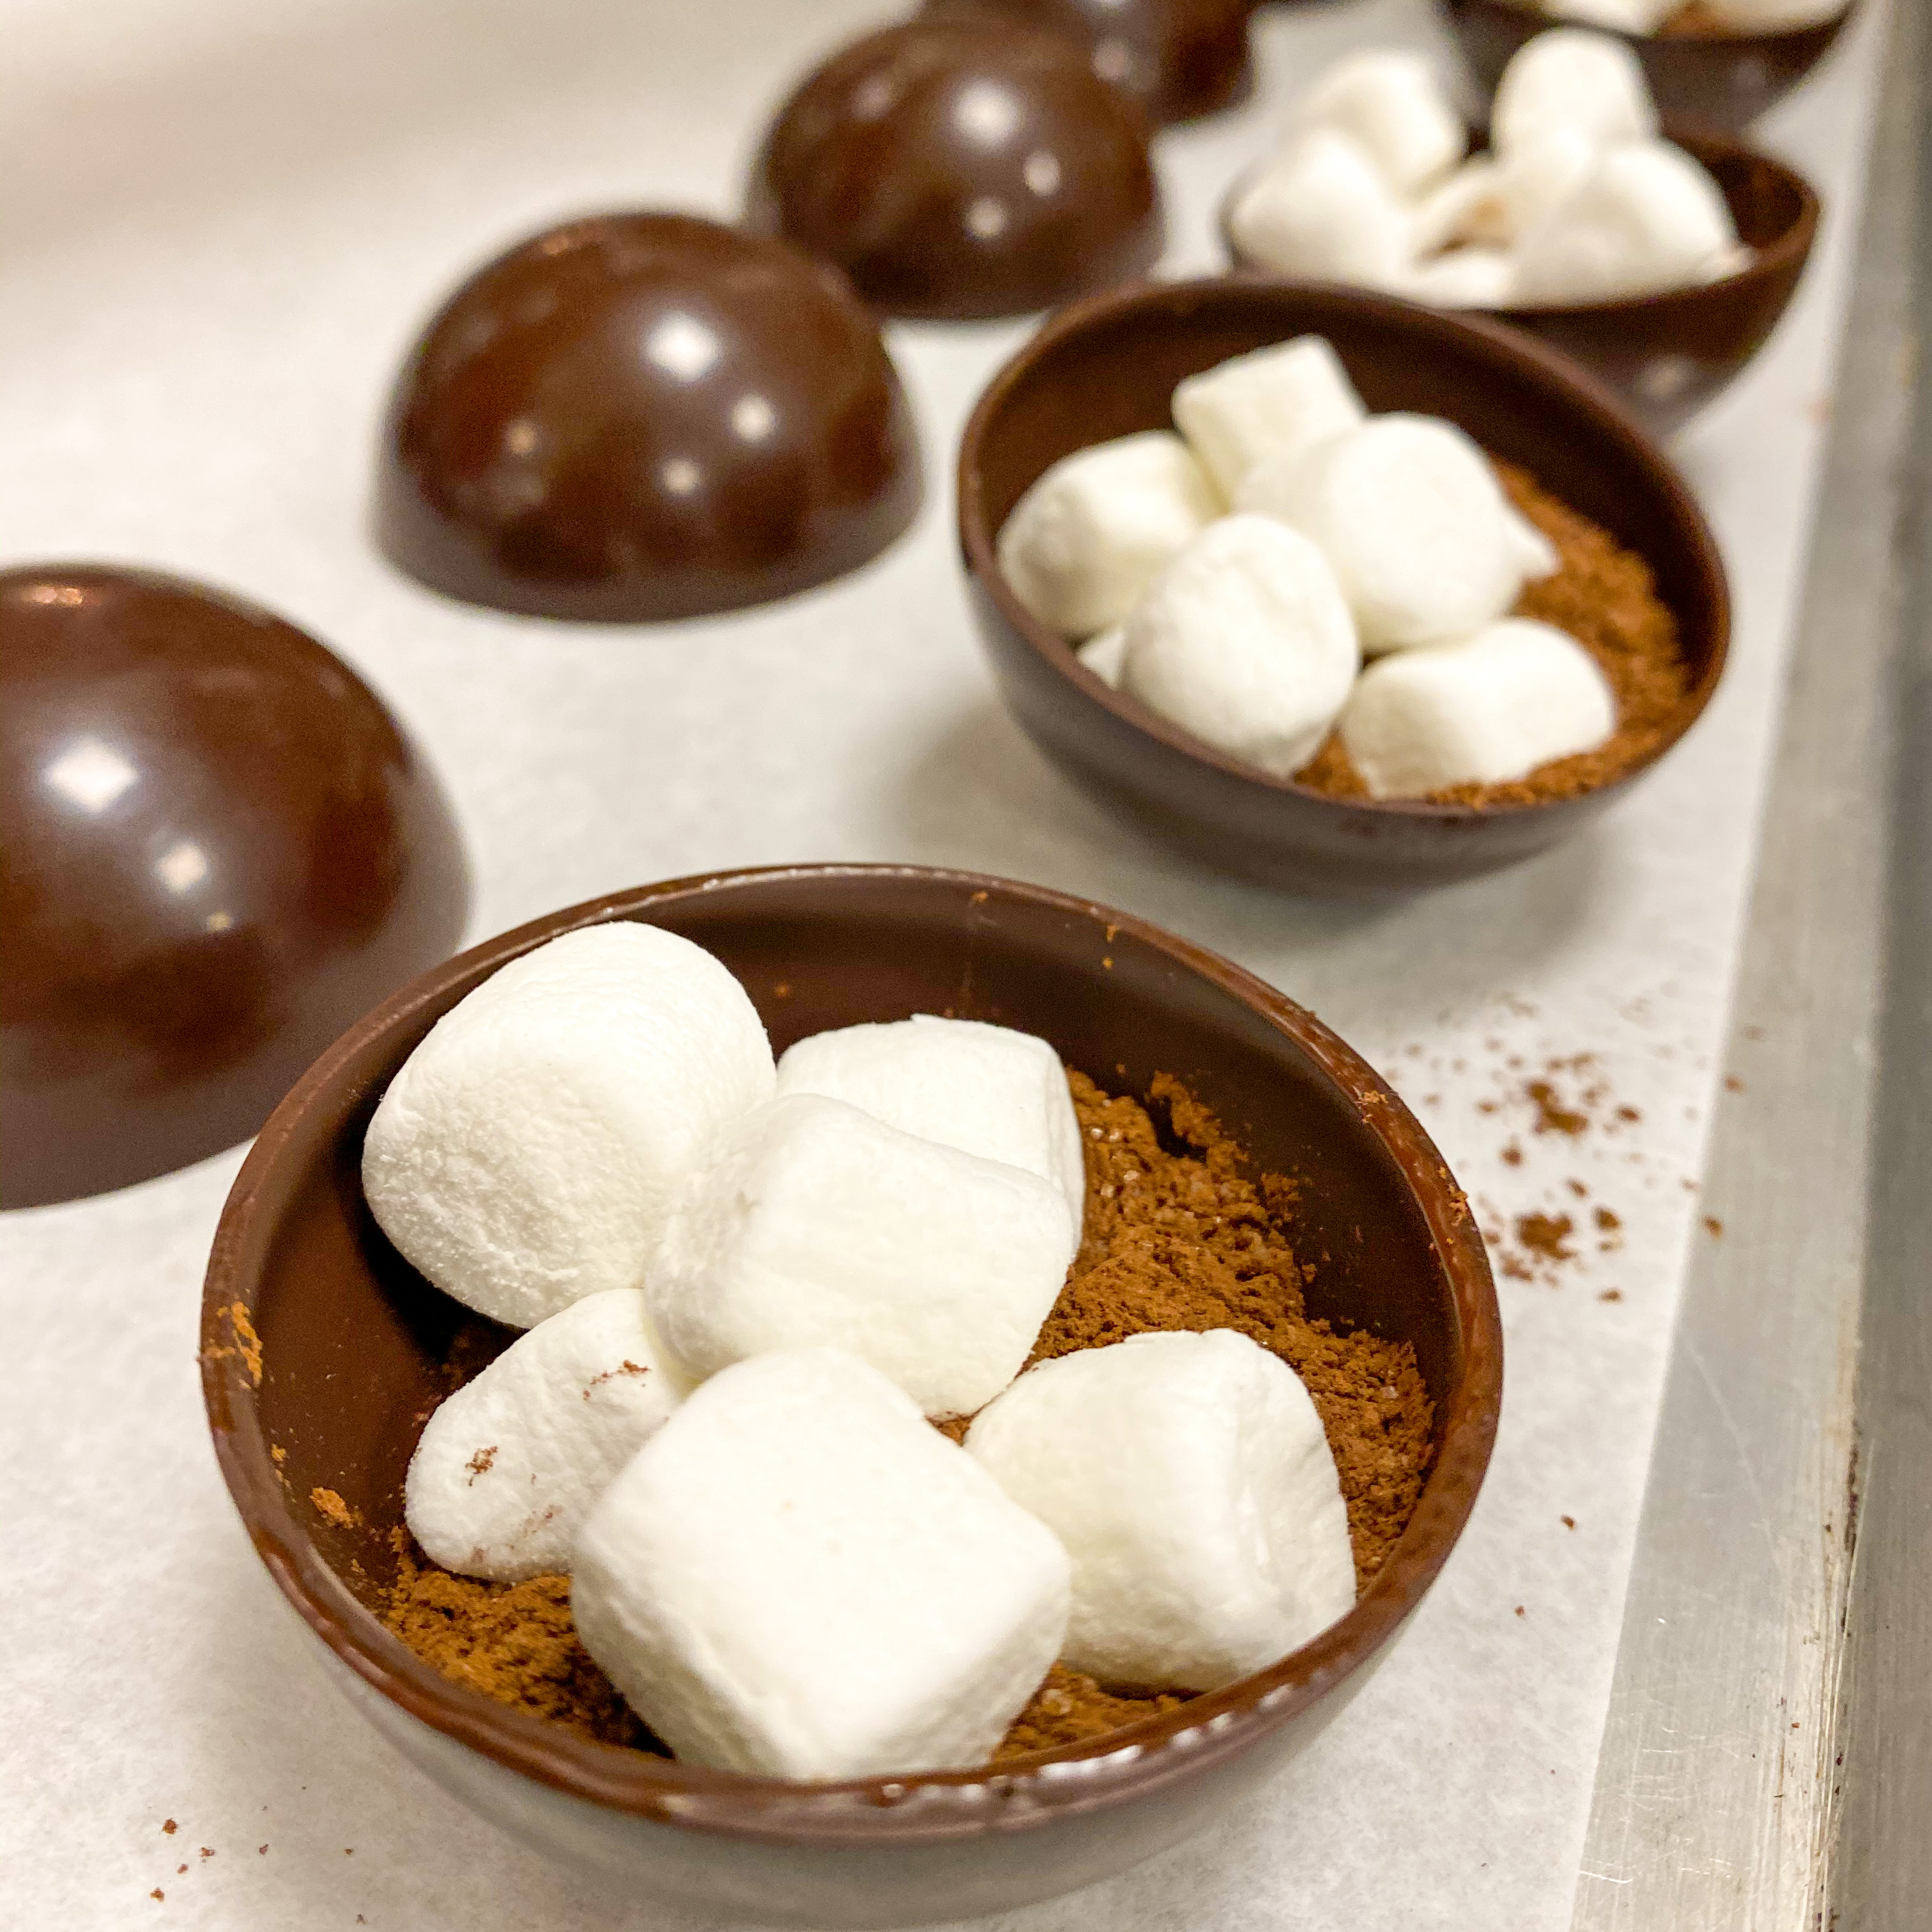 cocoa powder and marshmellows